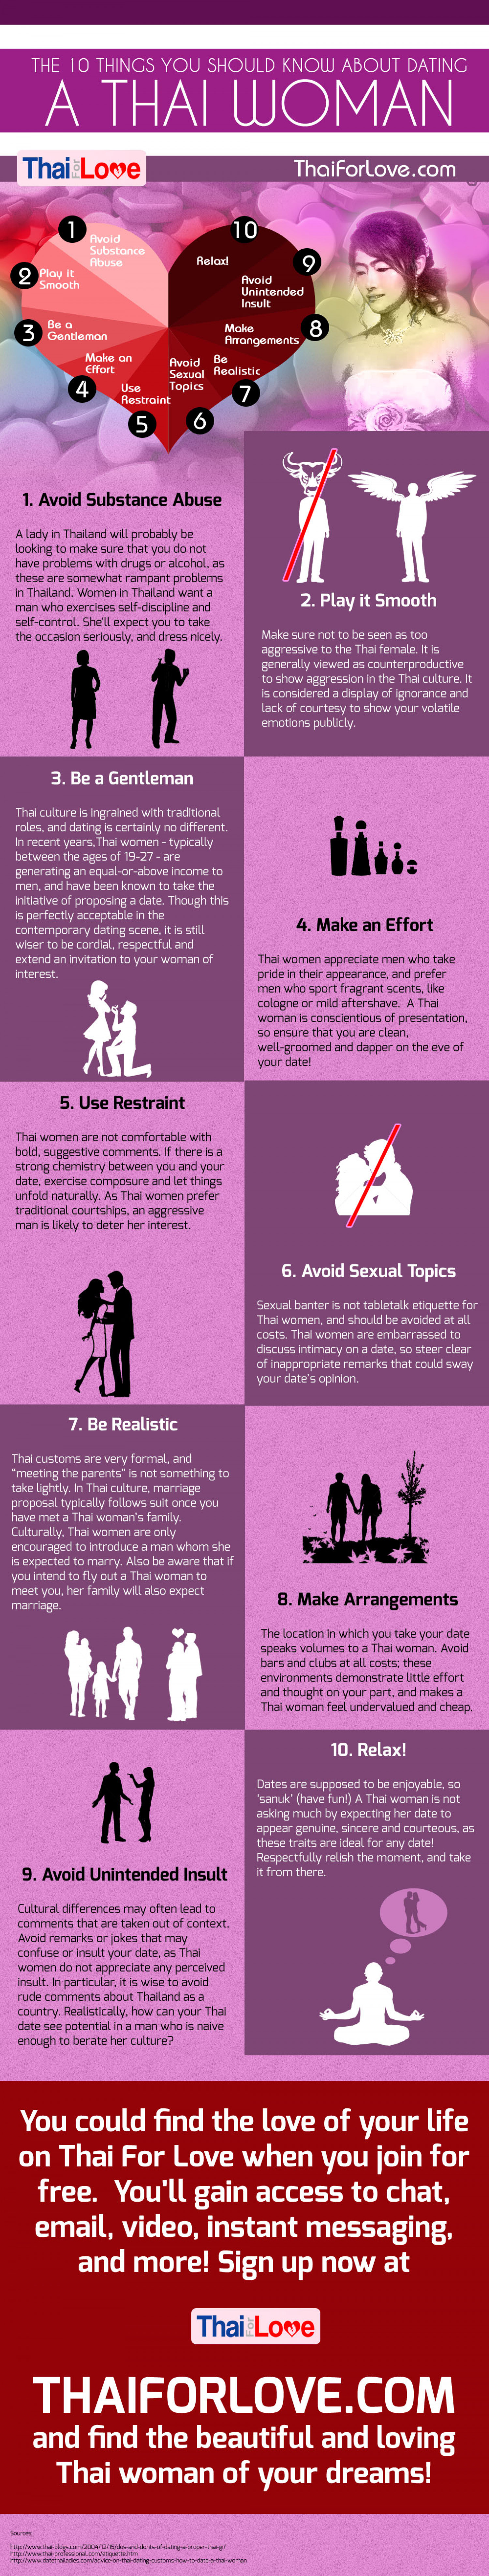 The 10 Things You should know about Dating A THAI WOMAN Infographic